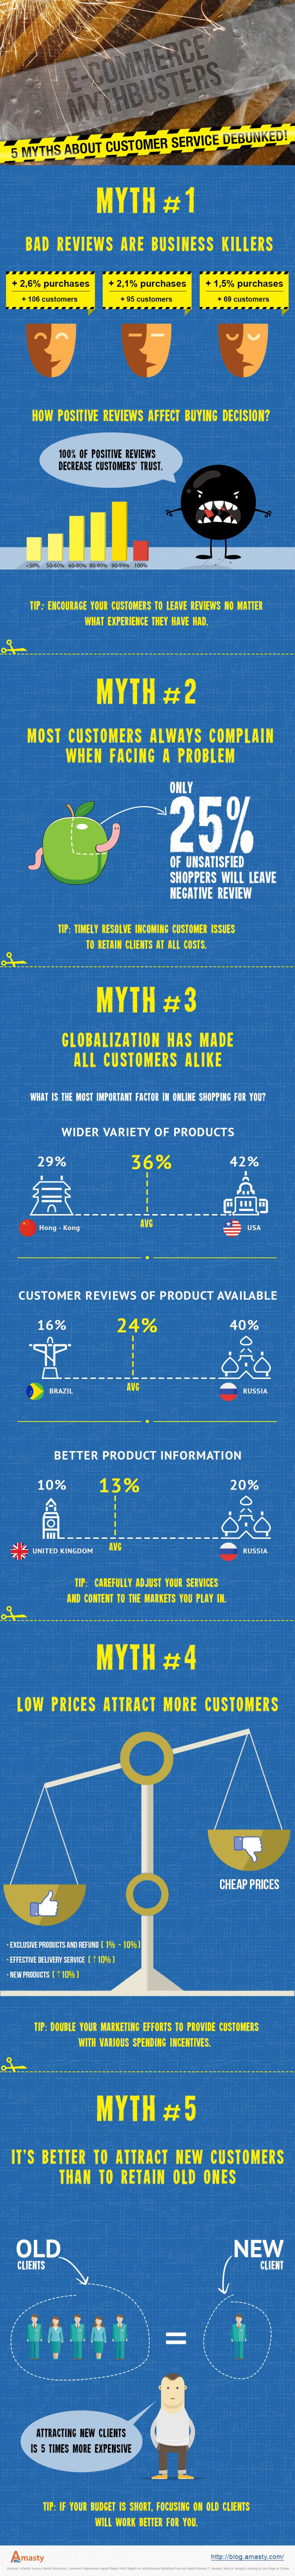 Mythbusters: 5 Myths about Customer Service [INFOGRAPHIC] Infographic